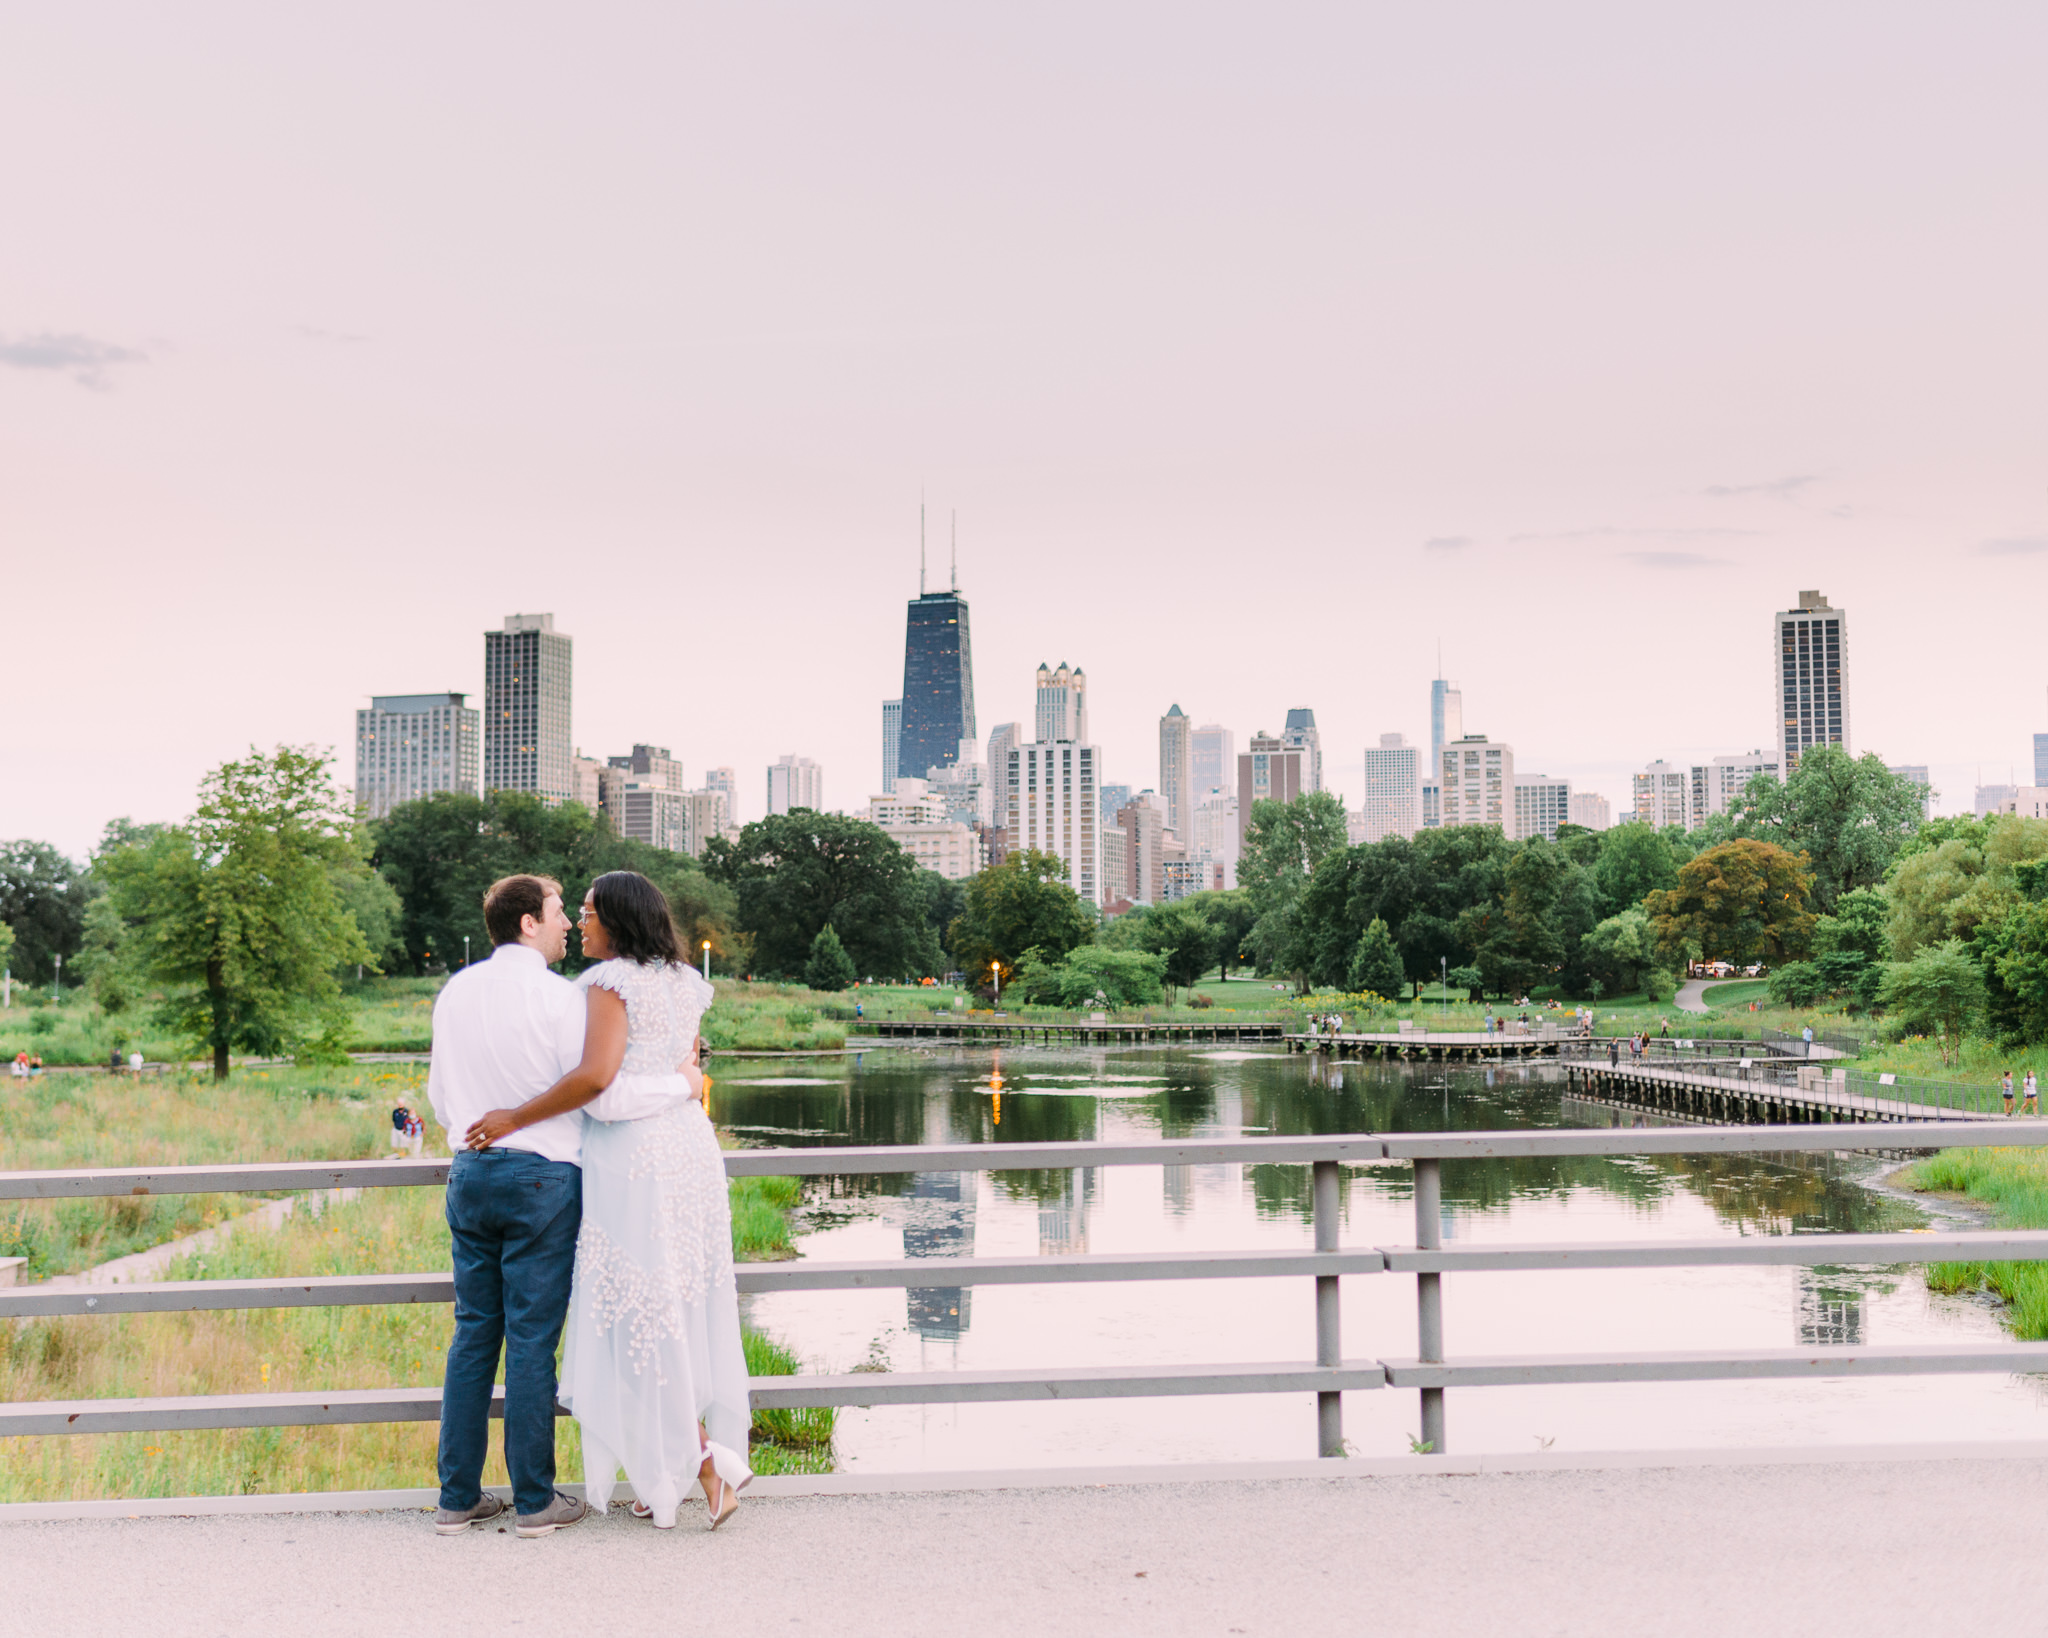 Caelynne-Justin-Engagement-Lincoln-Park-Nature-Boardwalk-Chicago-IL-2020-122